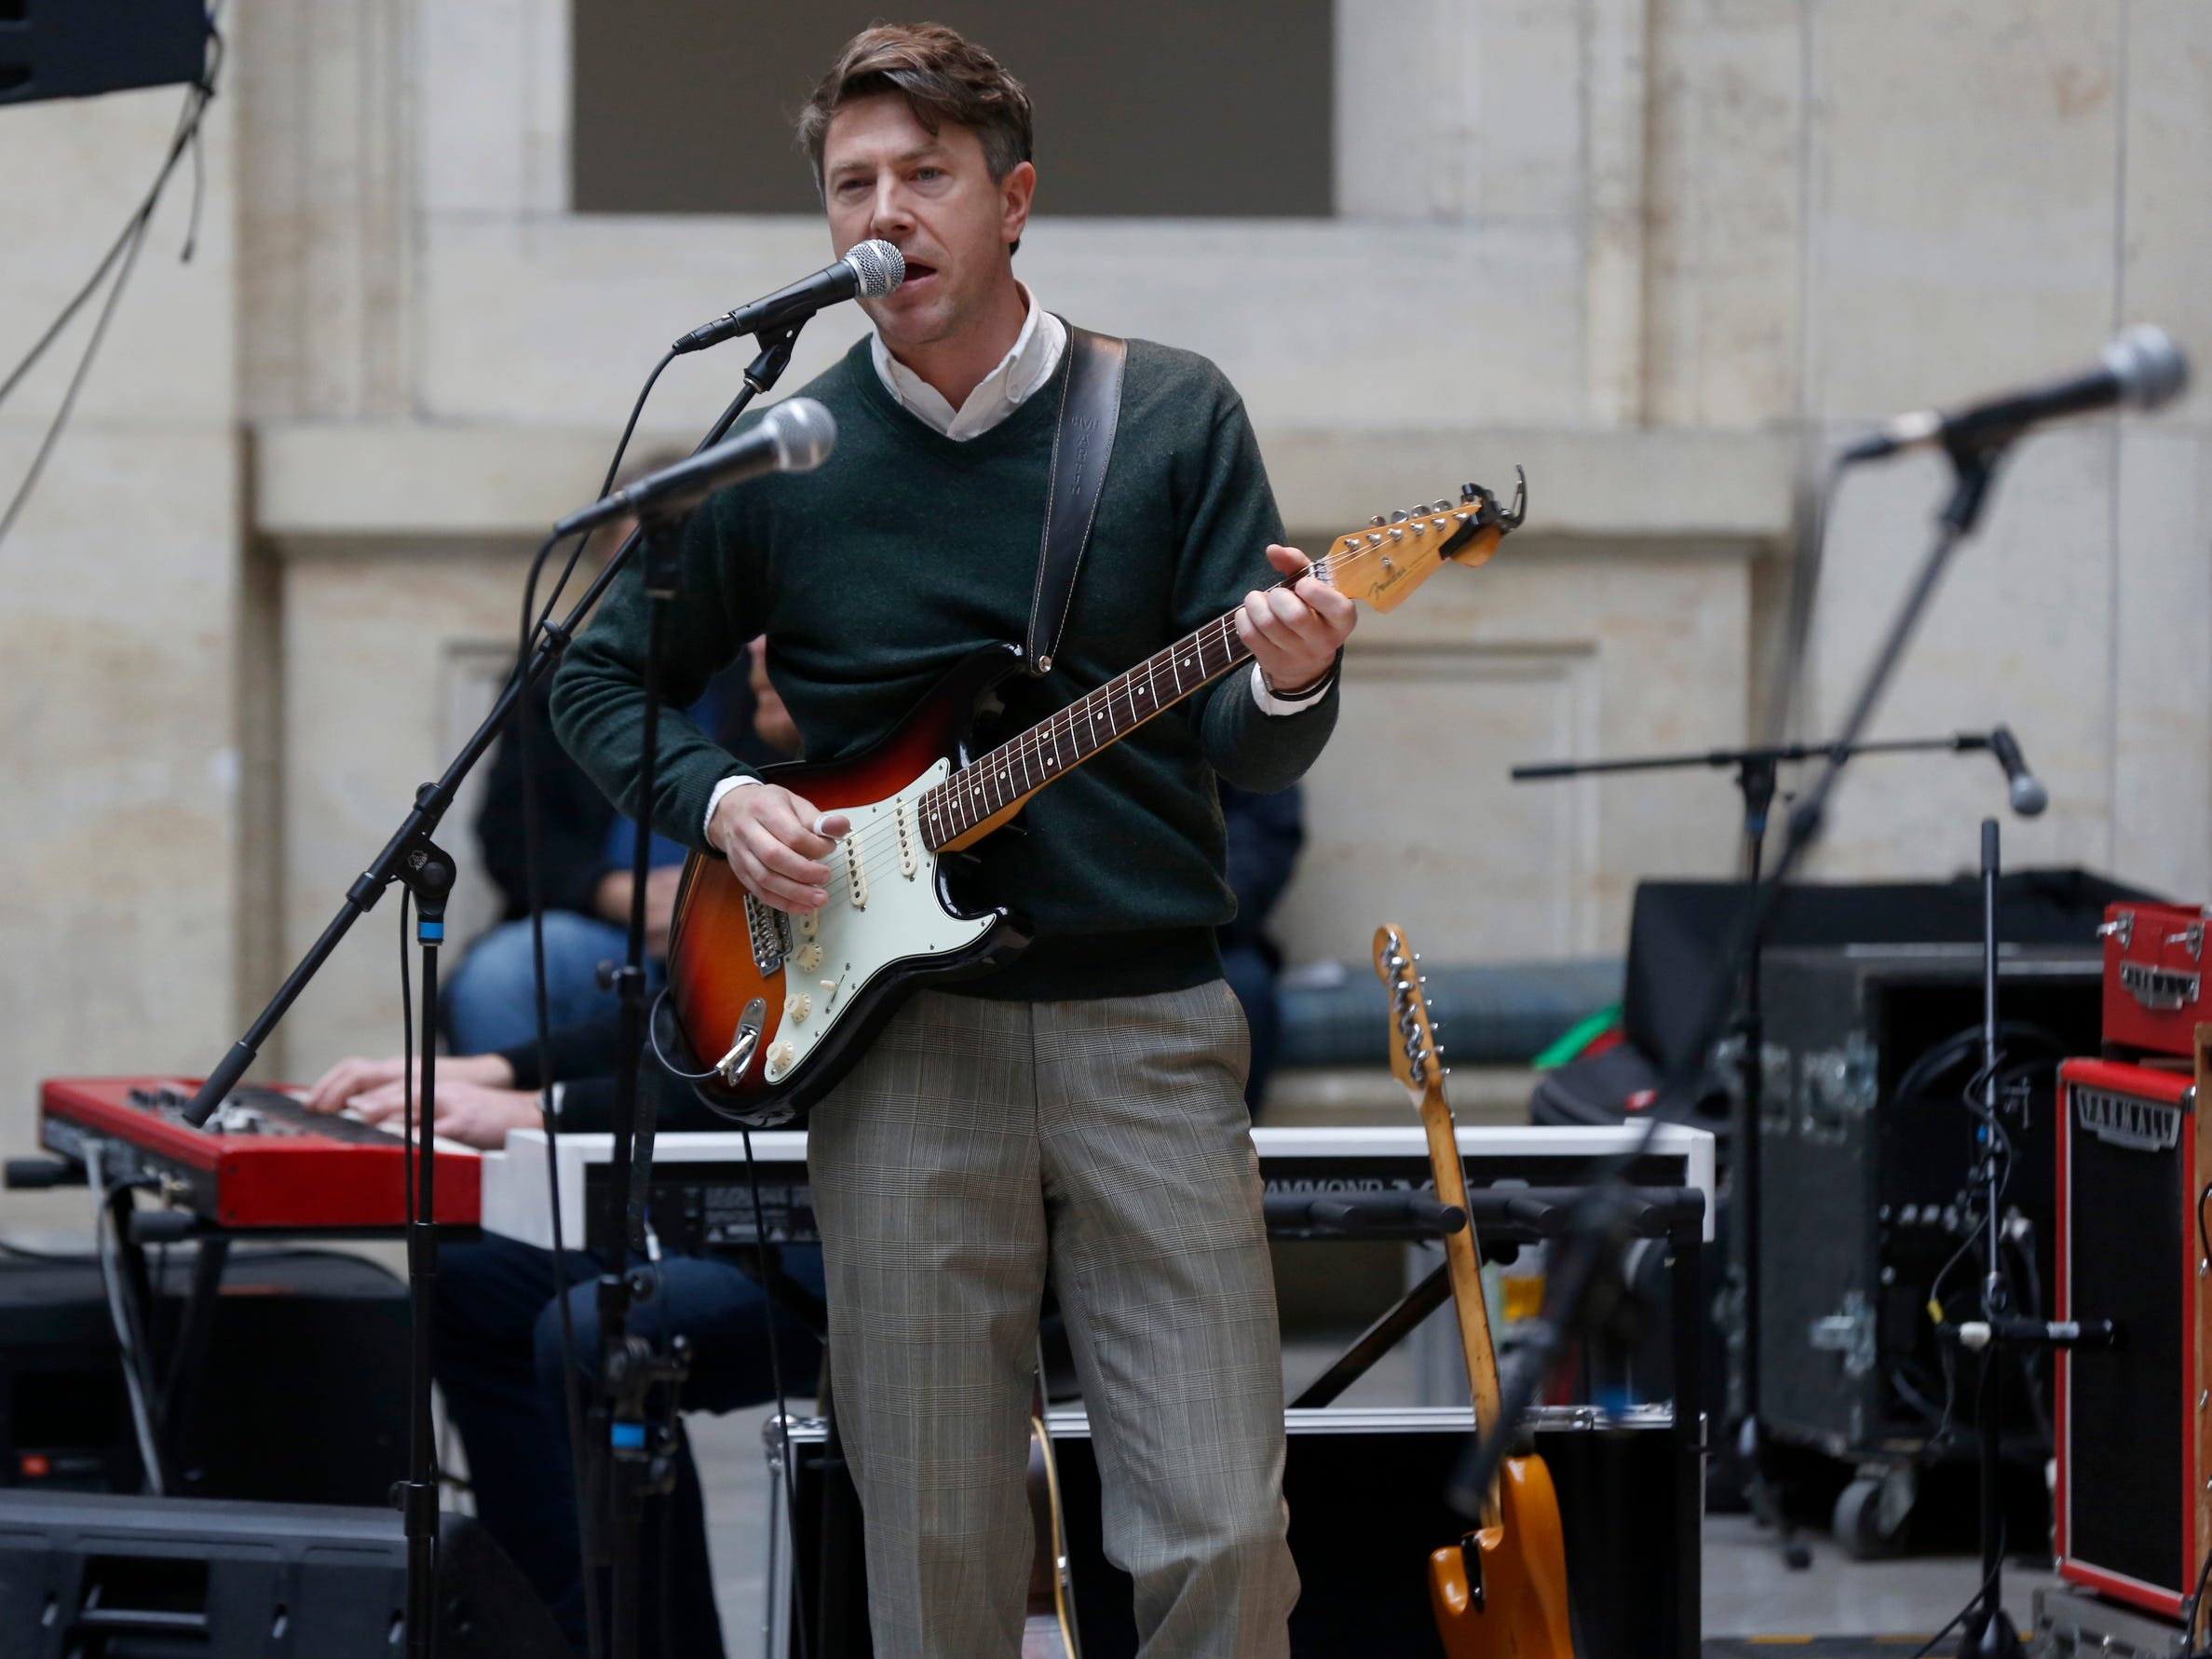 Luke Winslow-King and his band perform in the Rivera Court at the Detroit Institute of Arts in Detroit on Saturday, December 1, 2018 during the daytime session of Noel Night.